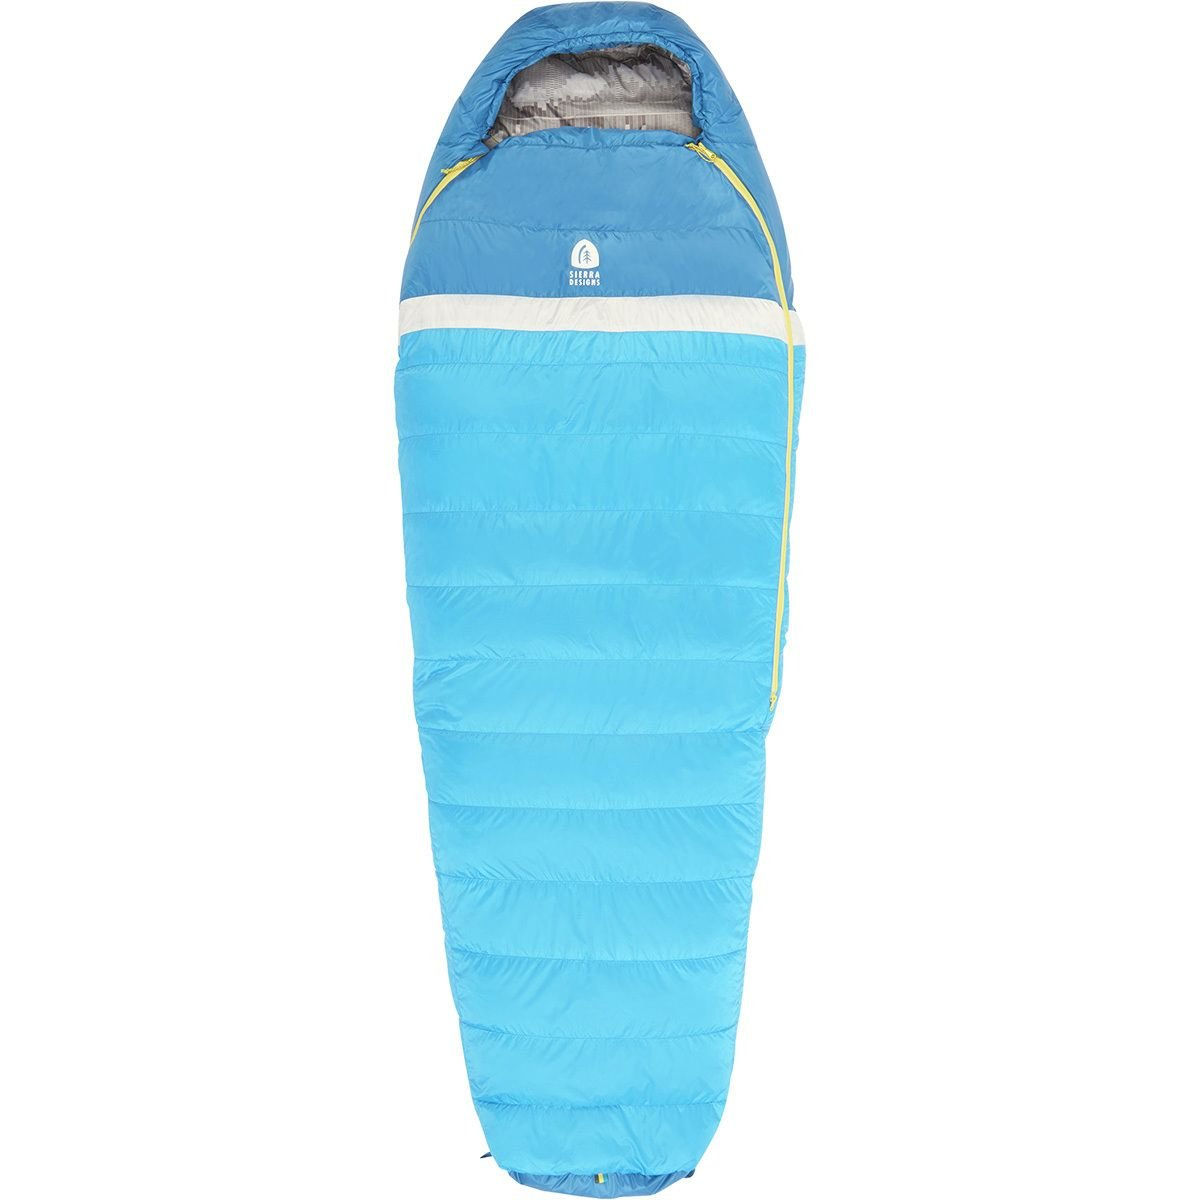 An image of Sierra Design Zissou Polyester Taffeta Sleeping Bag | Expert Camper